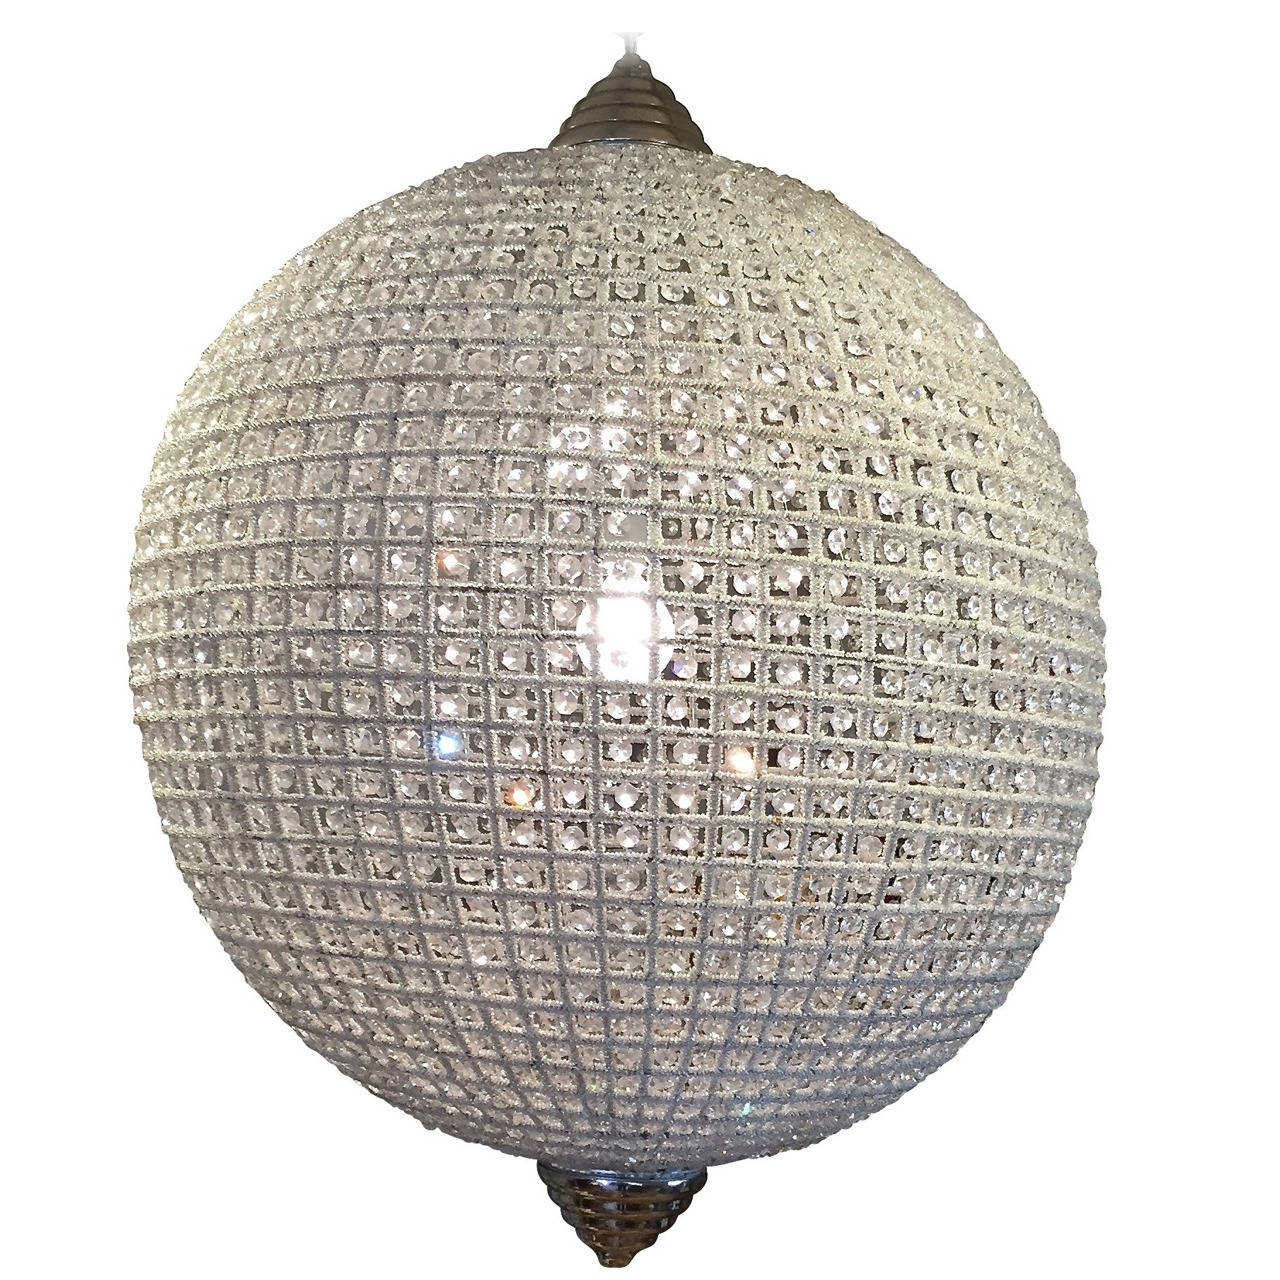 Stunning Large Crystal Ball Chandelier At 1stdibs With Regard To Crystal Ball Chandeliers (Image 24 of 25)